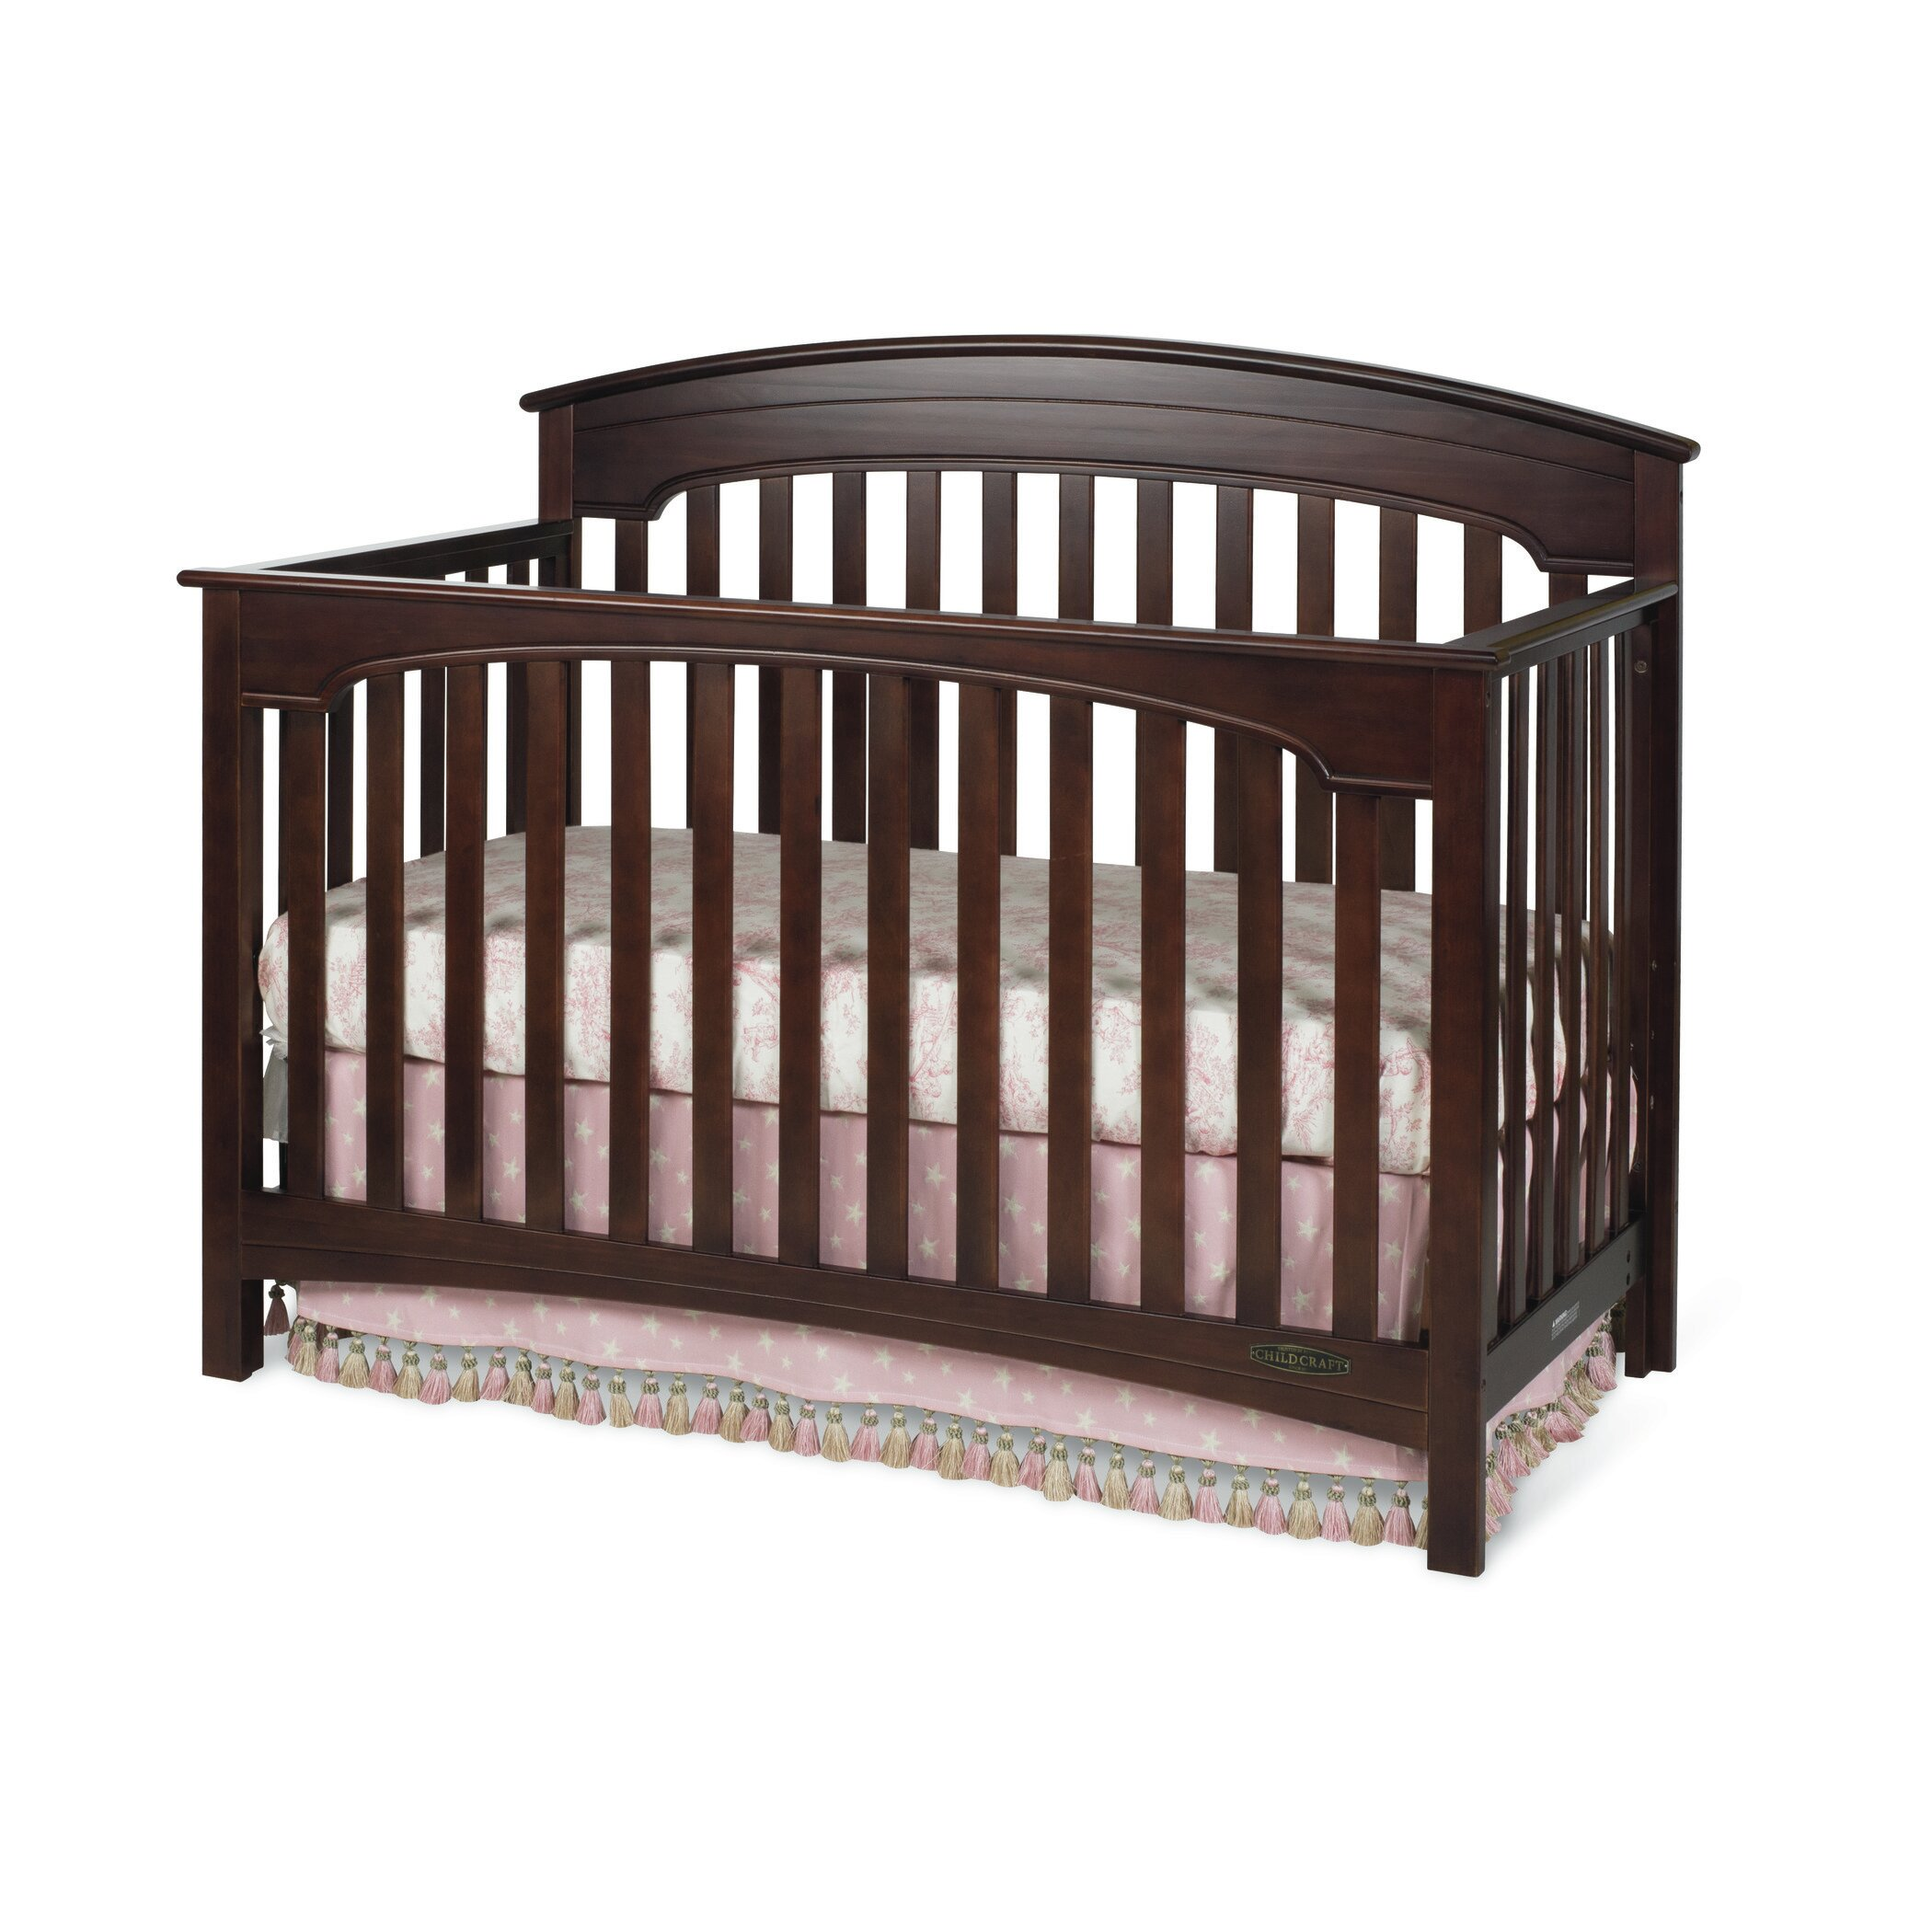 Child craft stanford 4 in 1 convertible 2 piece crib set for Child craft crib reviews